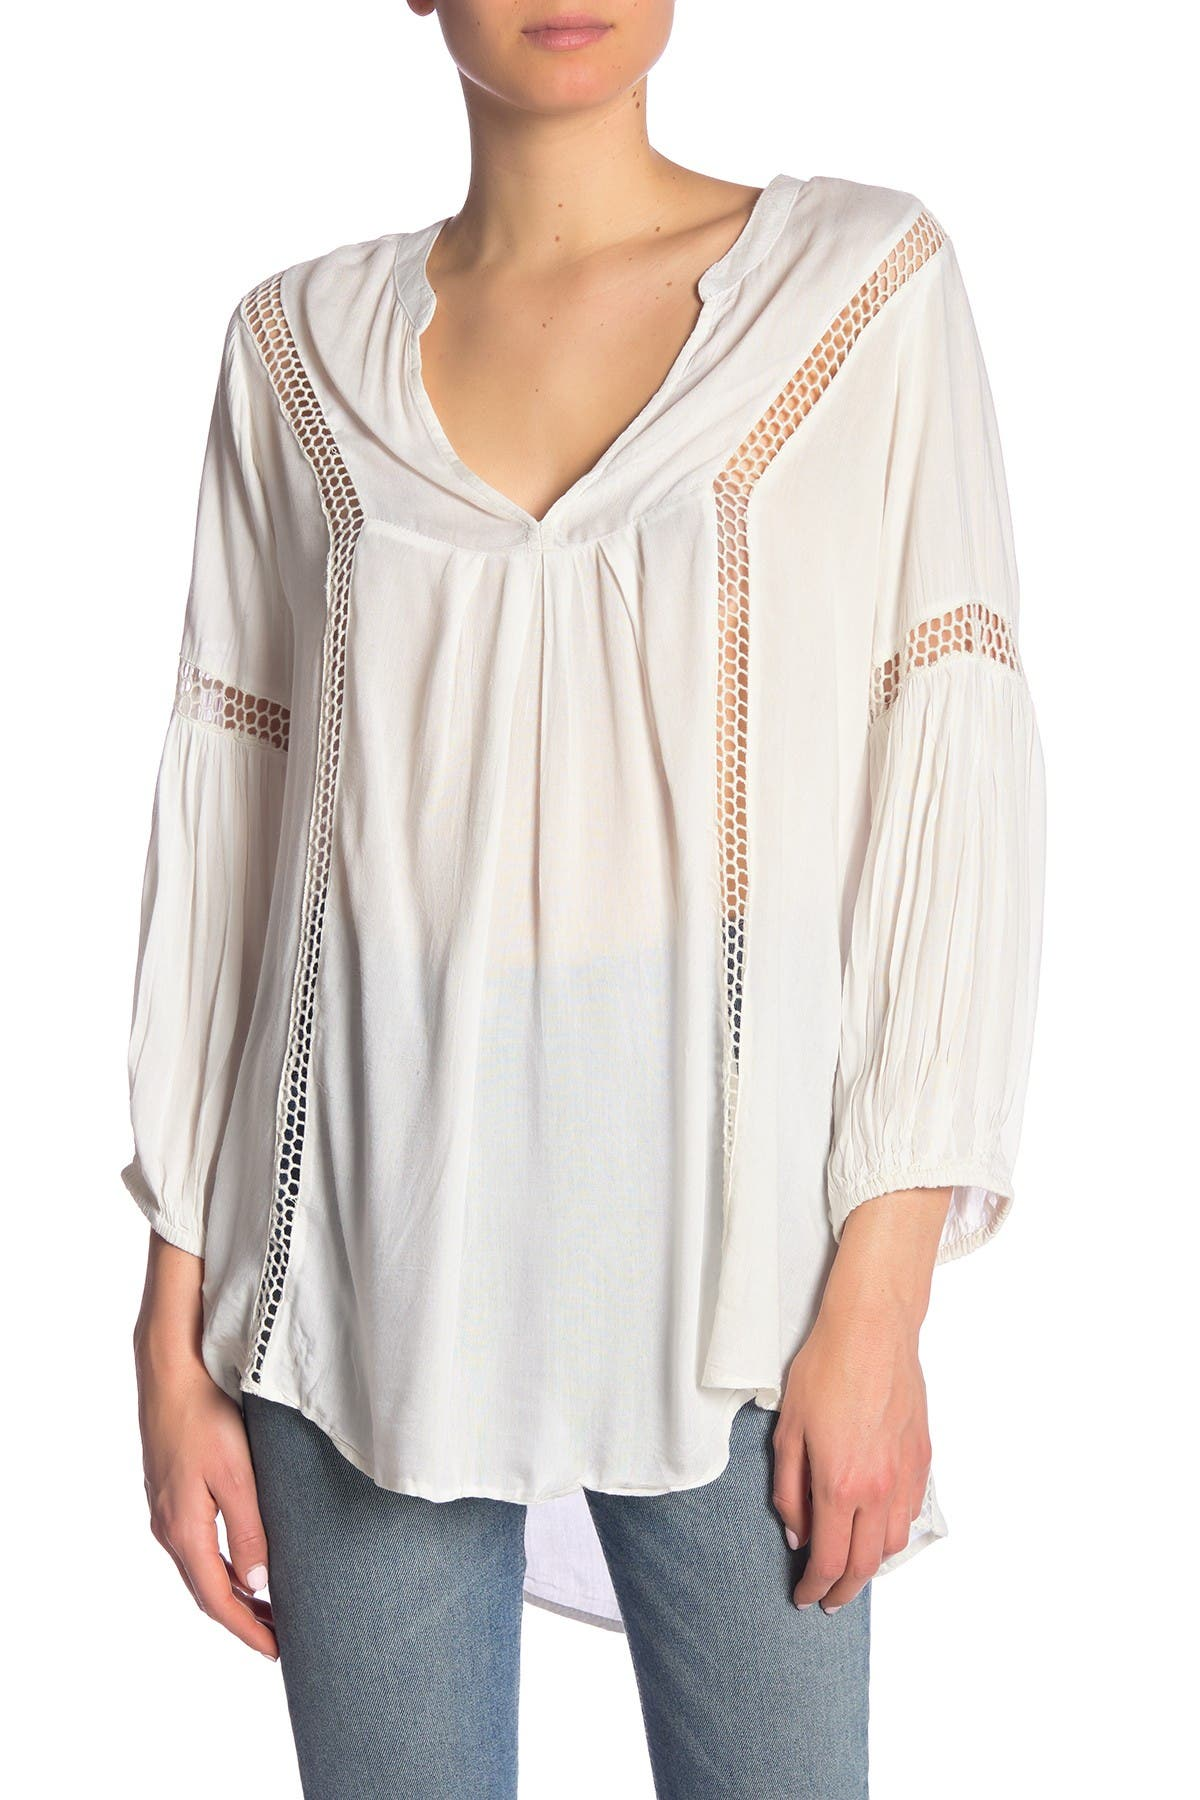 Image of BOHO ME Crochet Lace Inset Cover-Up Tunic